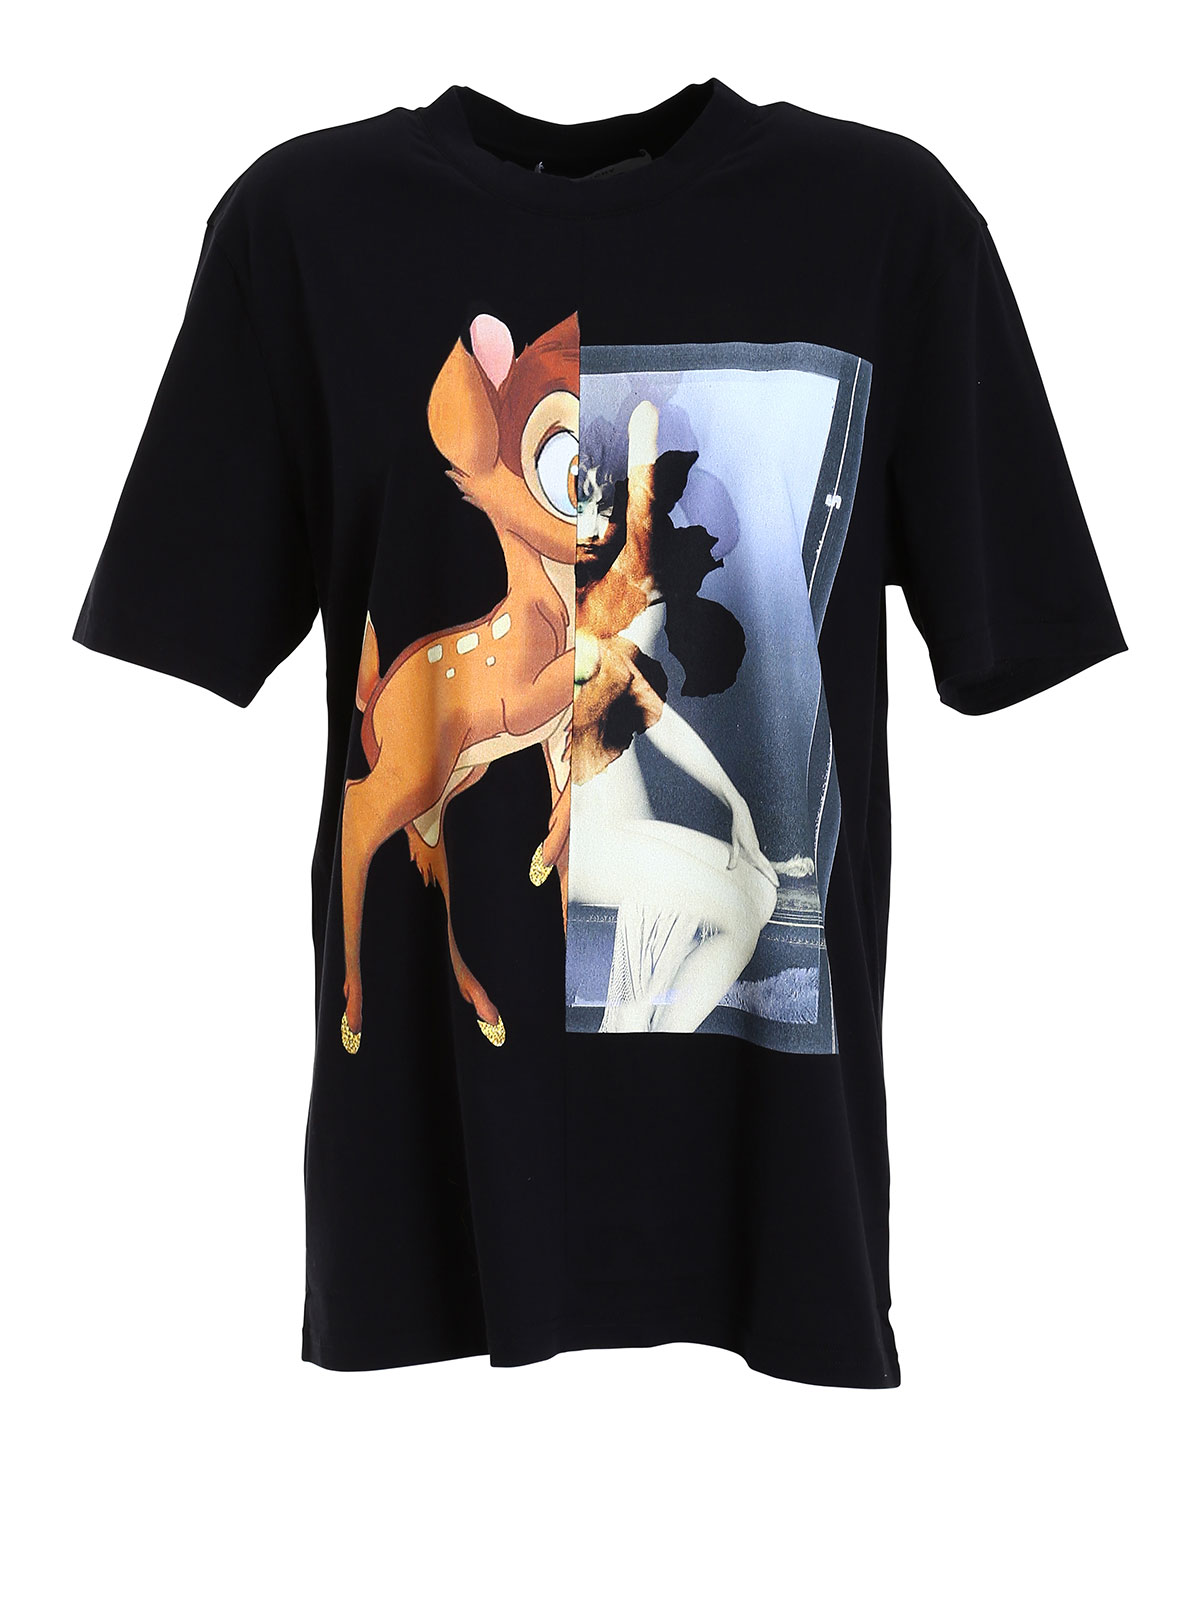 bambi print t shirt by givenchy t shirts ikrix. Black Bedroom Furniture Sets. Home Design Ideas